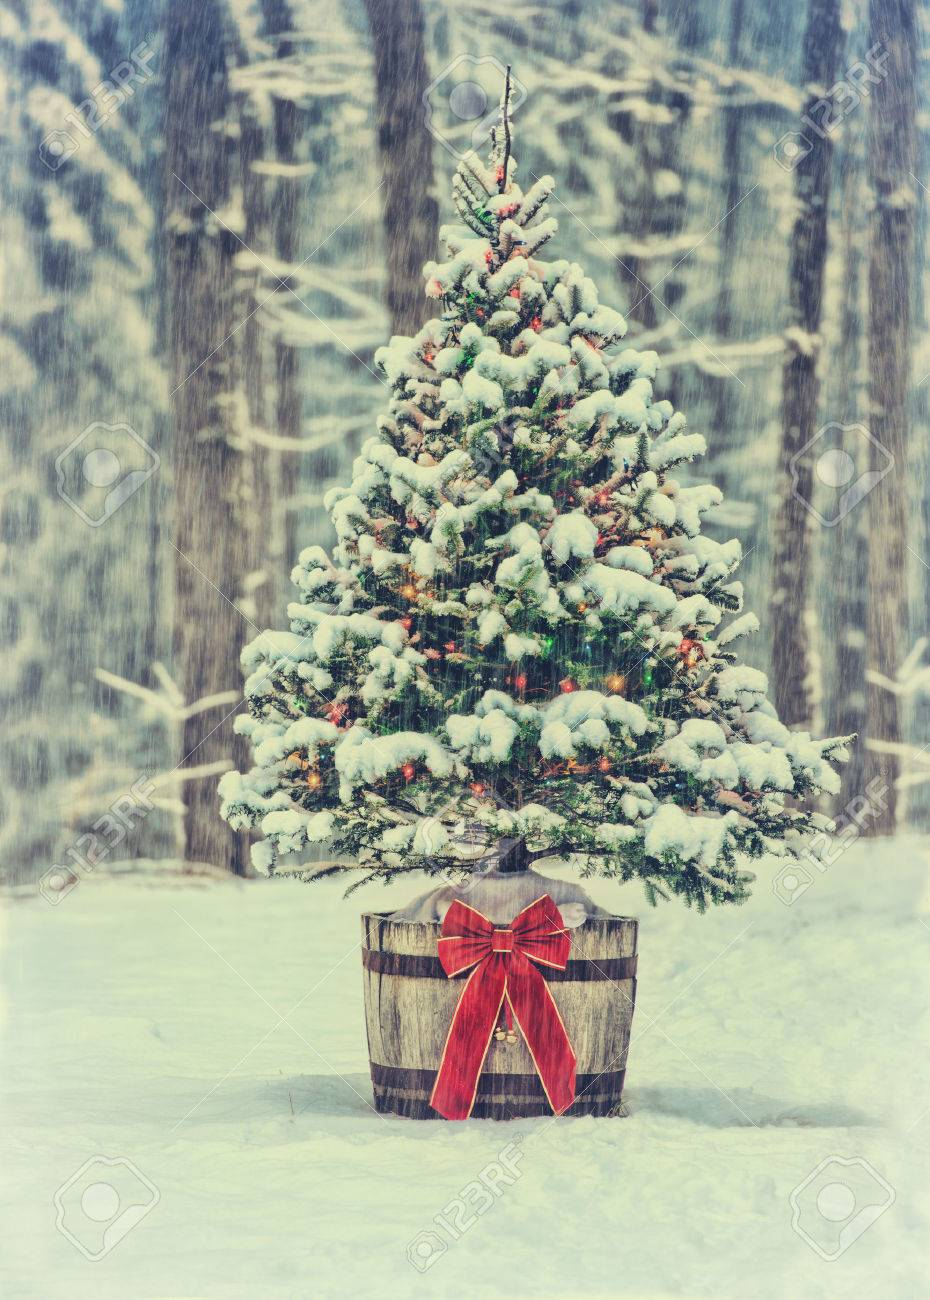 A Snow Covered Natural Spruce Christmas Tree With Illuminated Stock Photo Picture And Royalty Free Image Image 36622663